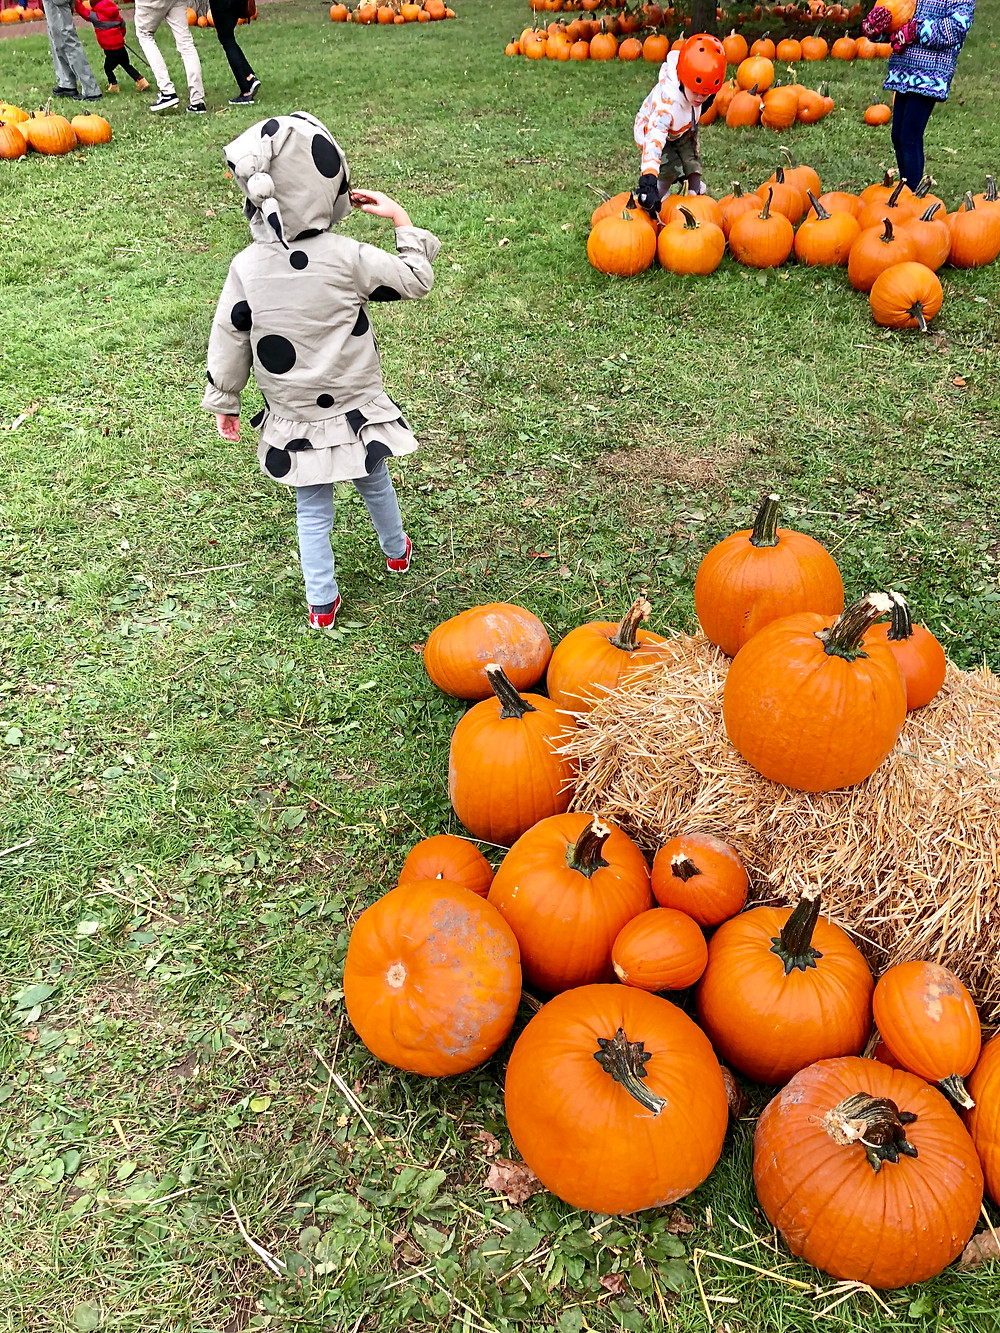 Free Fall Events, Free Options for Halloween, and Autumn Weekend Getaways for New York City Families, pumpkin patch, Governor's Island, Pumpkin Point